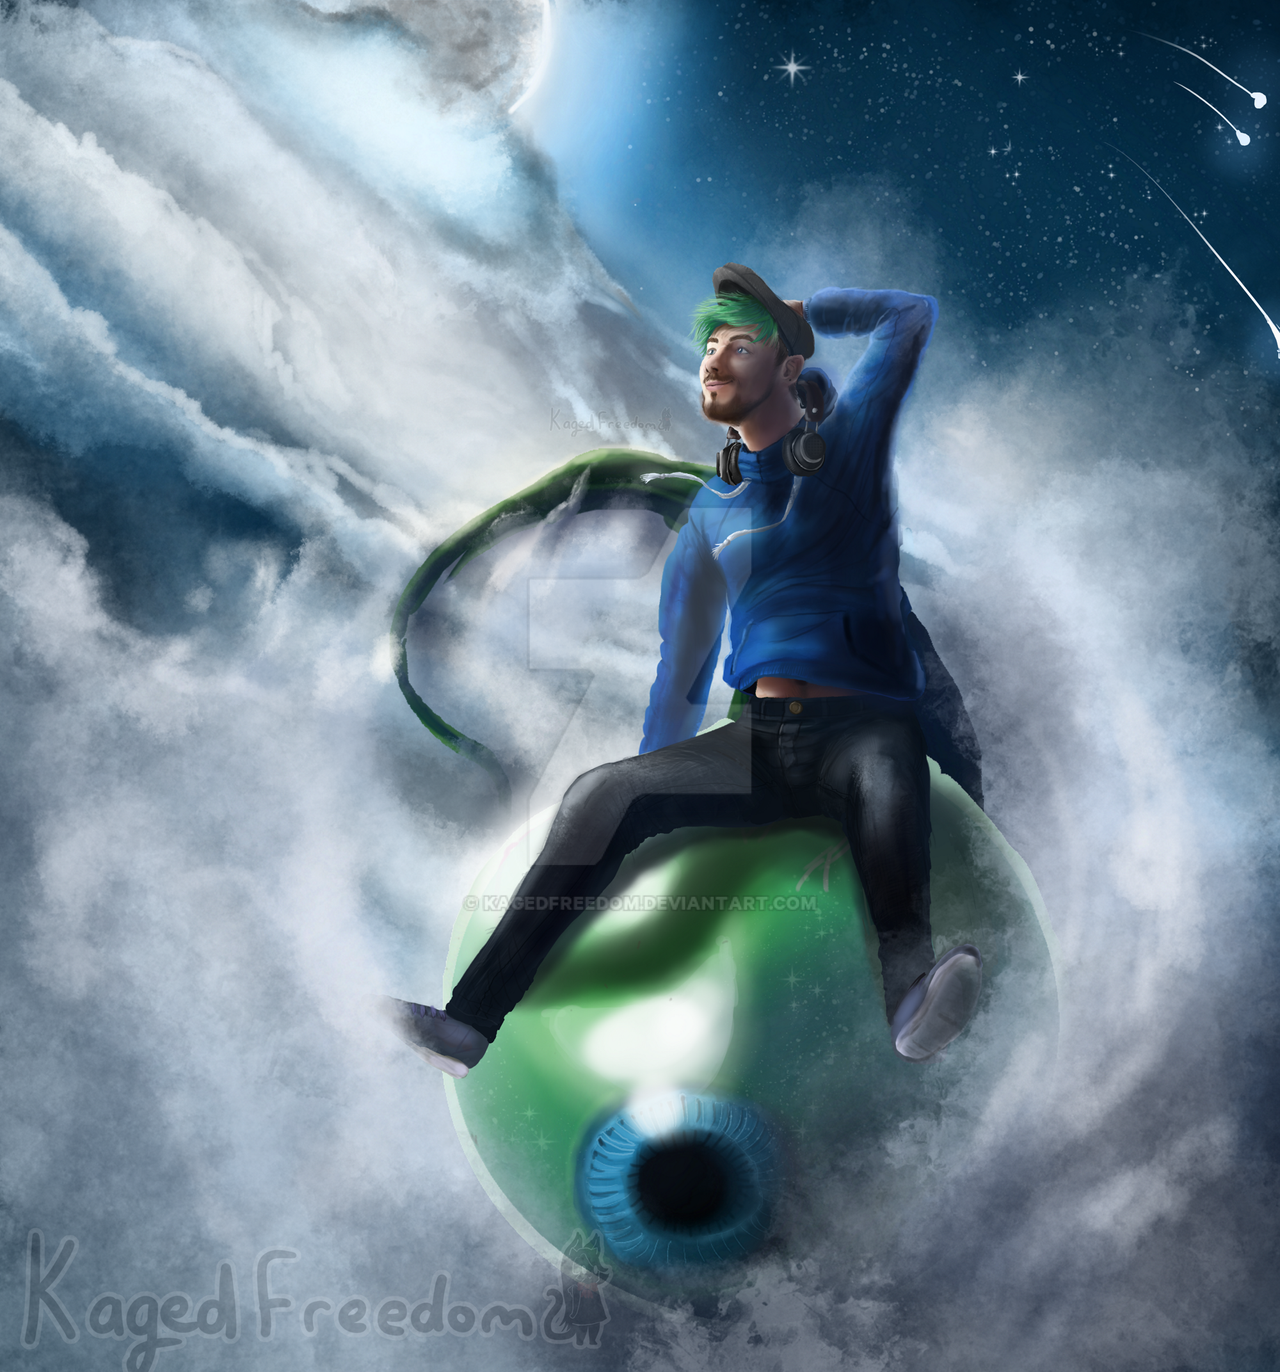 Joyride through the clouds. by KagedFreedom